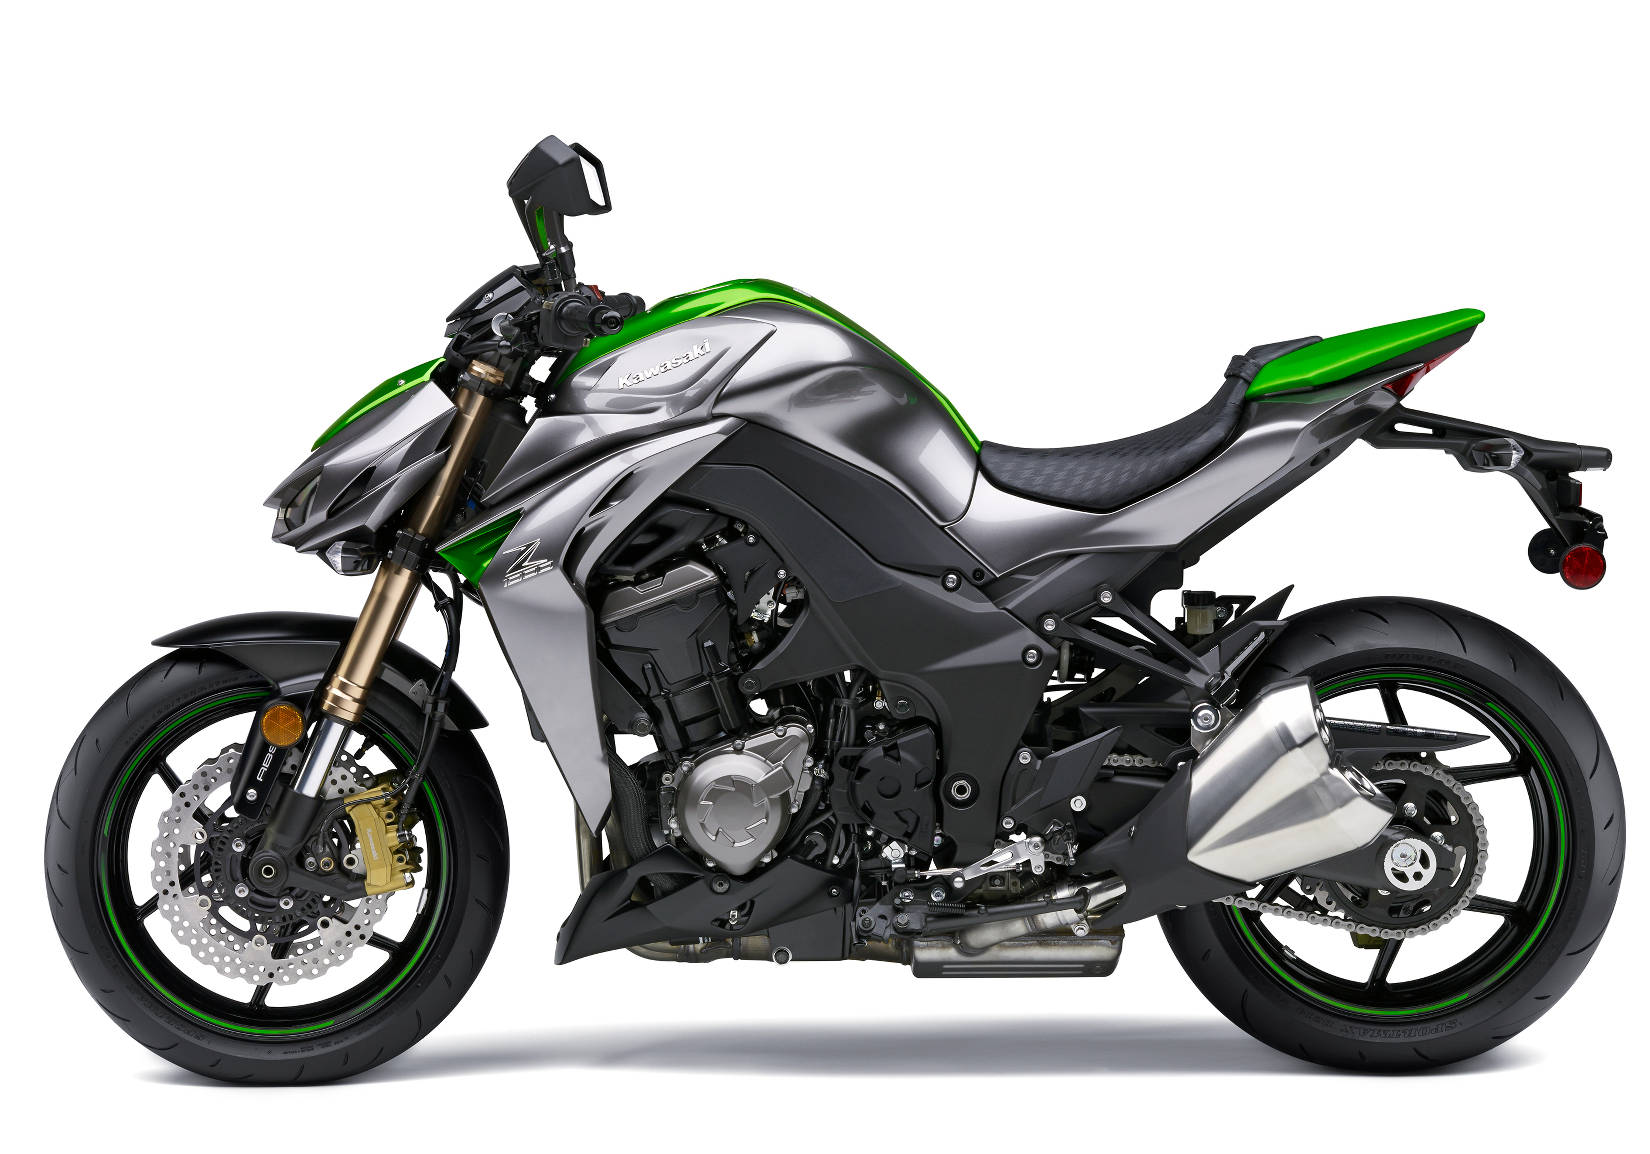 radical 2014 kawasaki z1000 unveiled kawasaki ninja forum. Black Bedroom Furniture Sets. Home Design Ideas